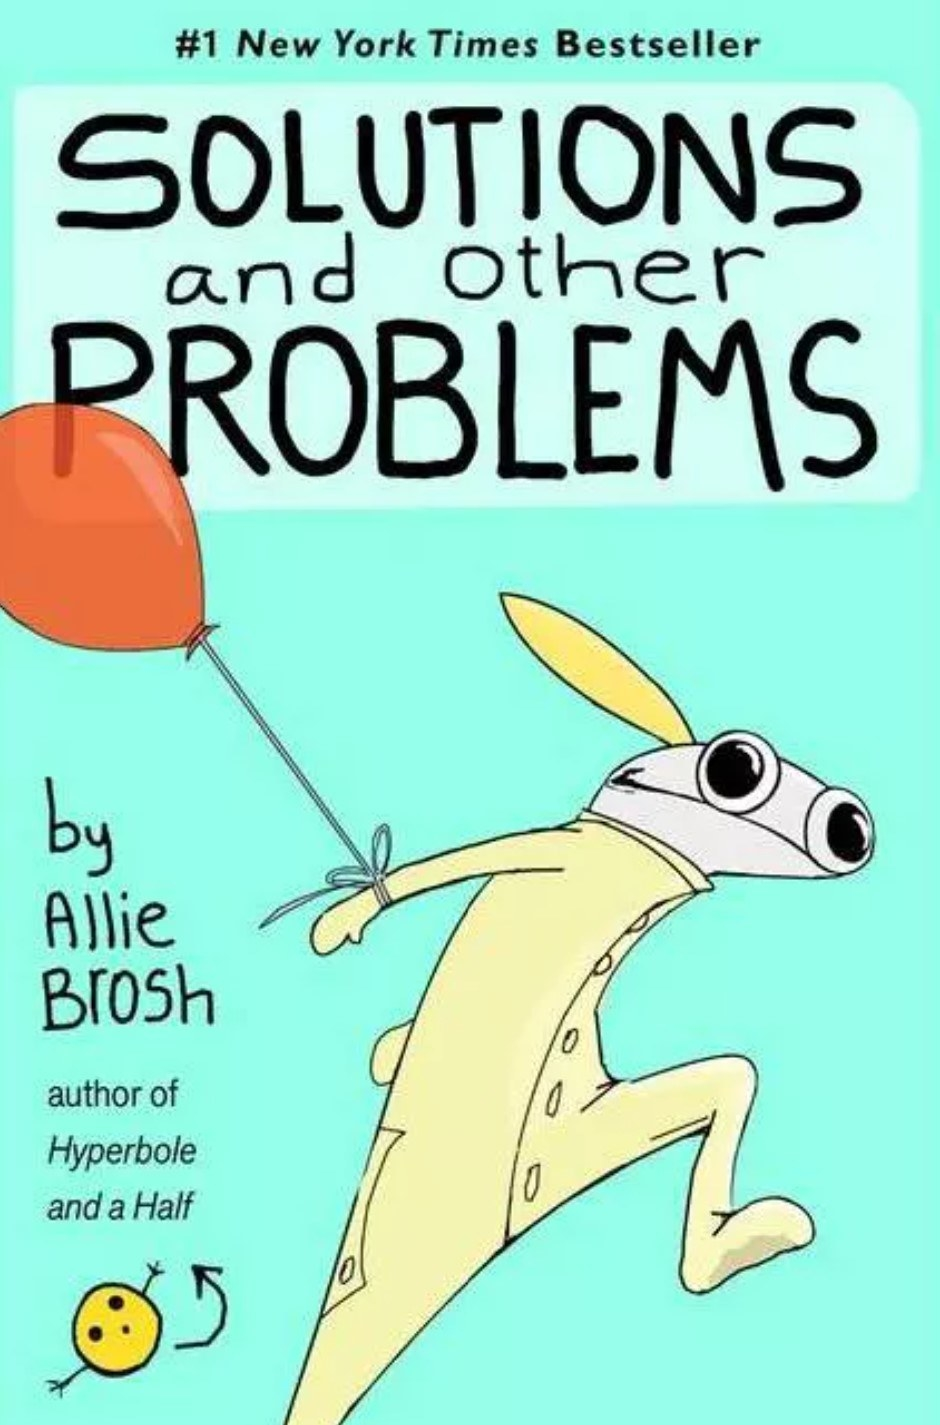 The cover of Solutions And Other Problems by Allie Brosh